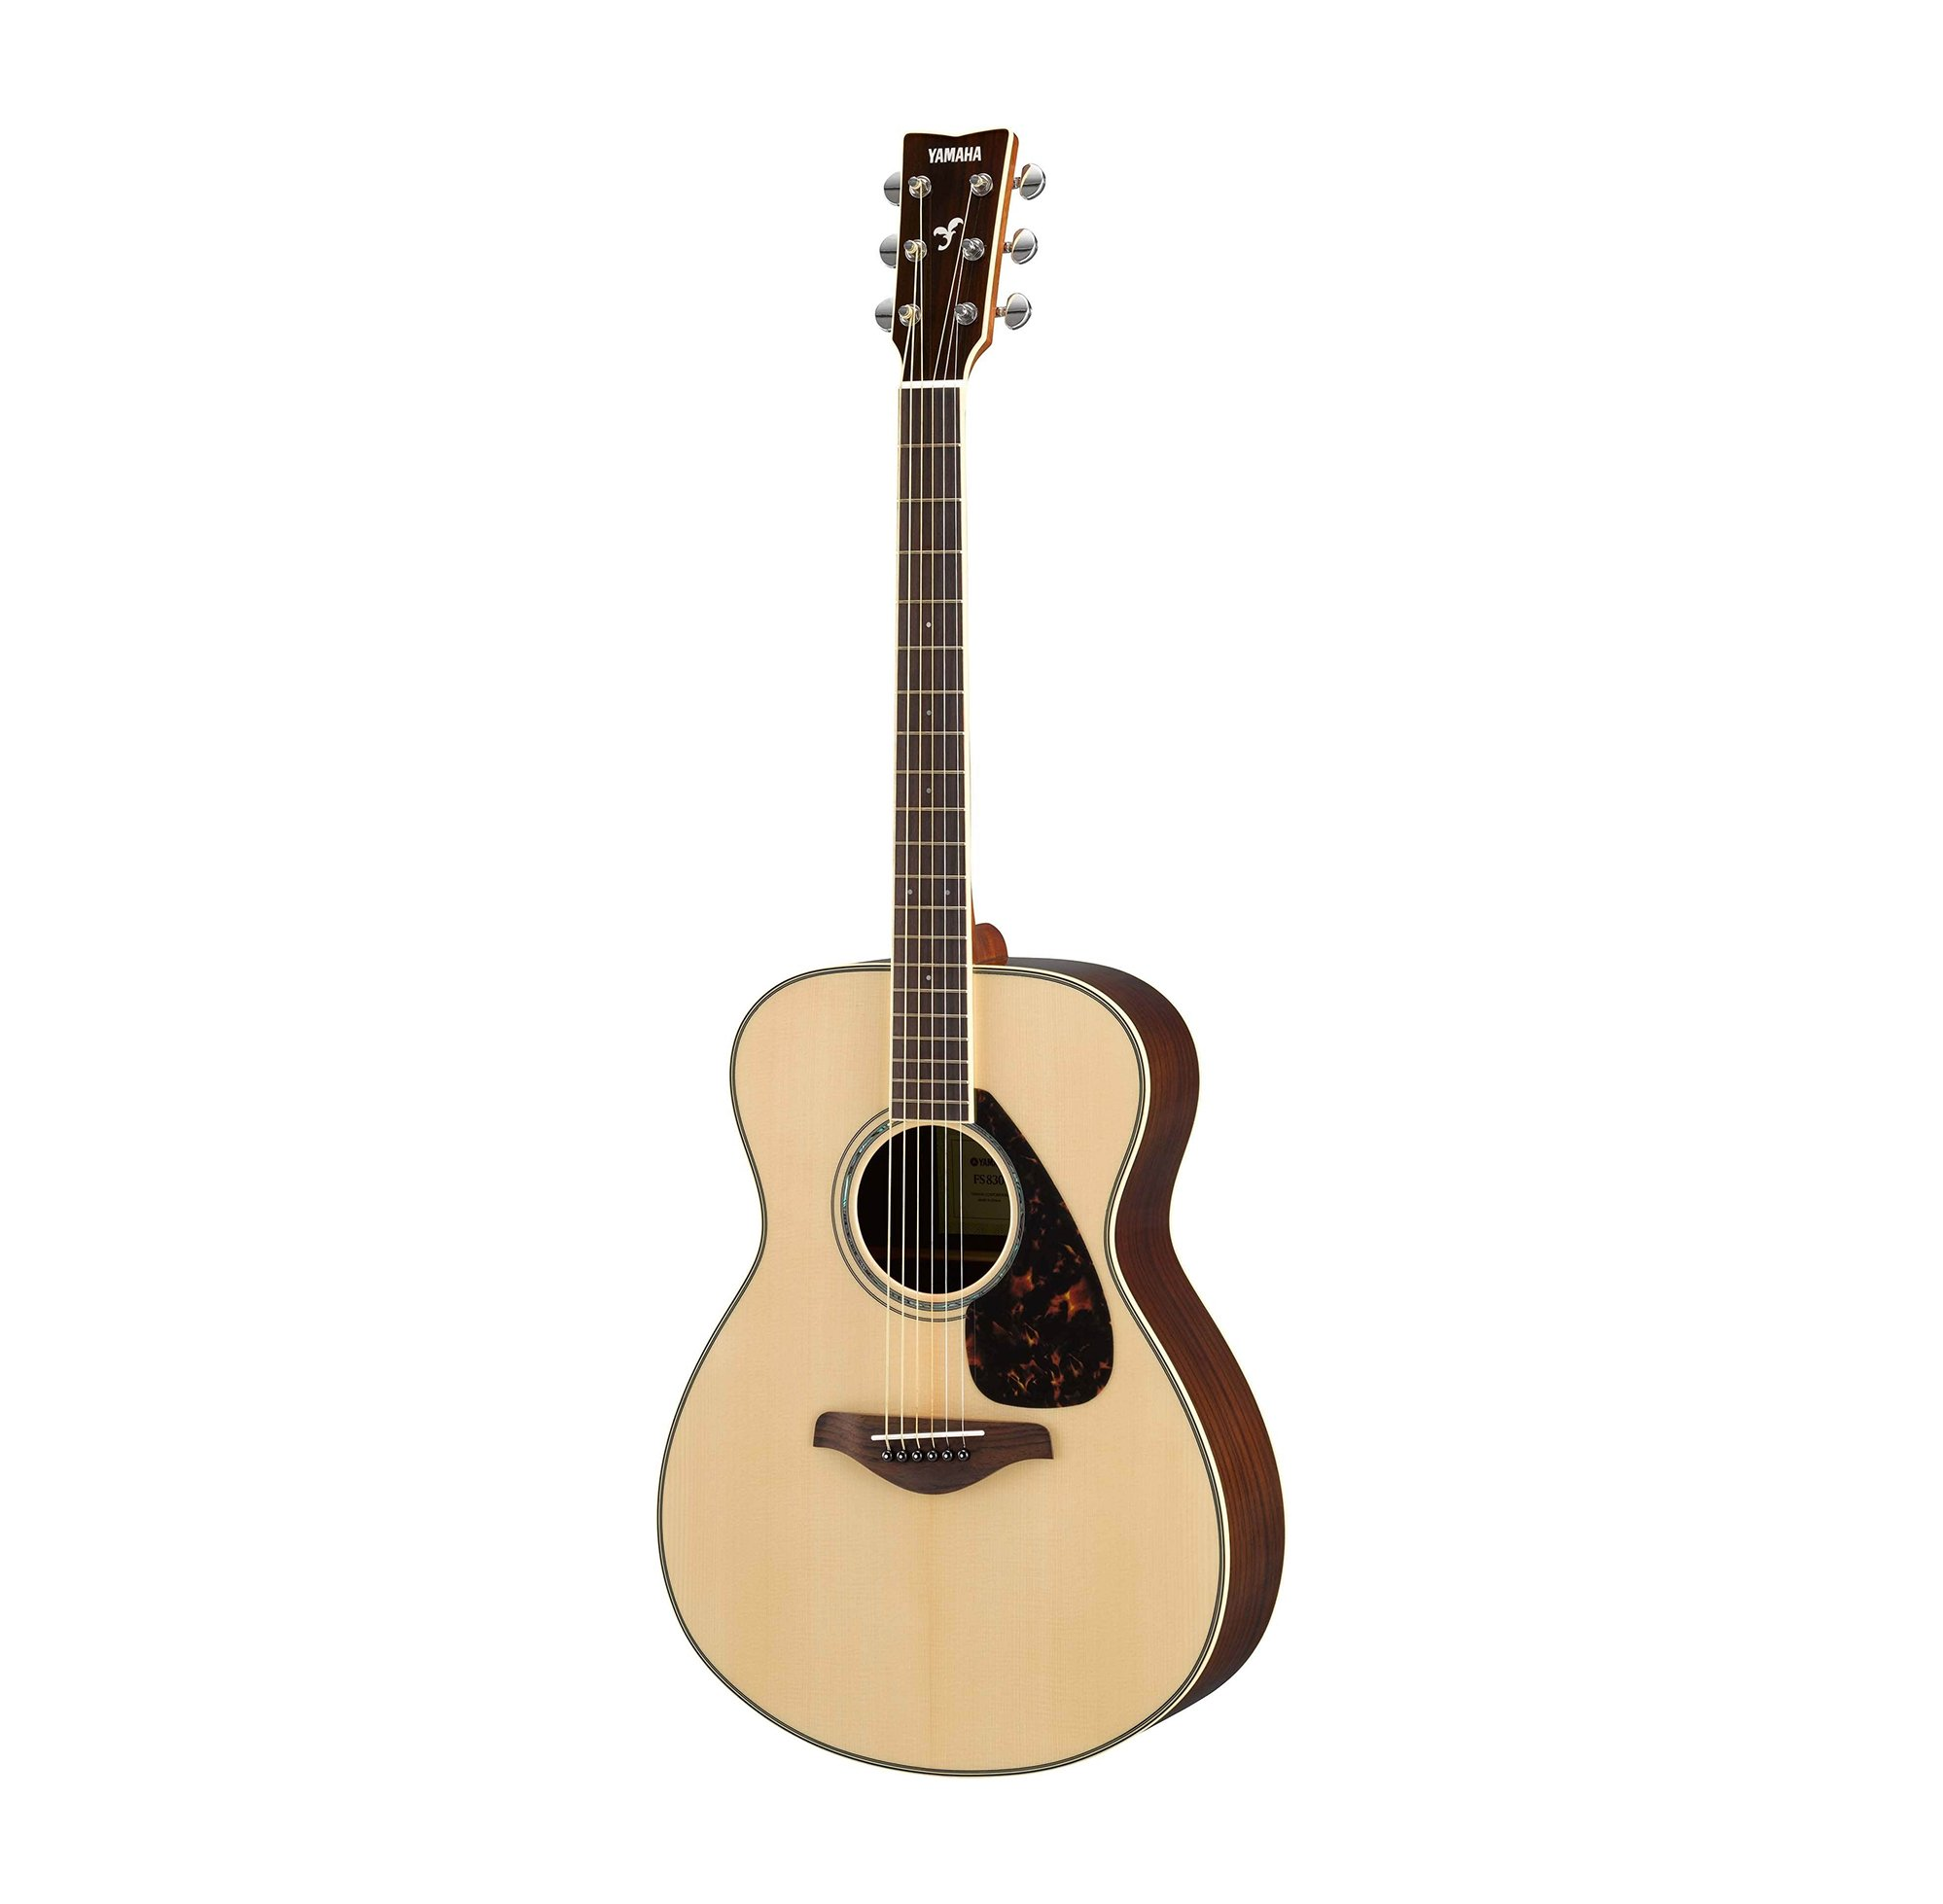 yamaha fs830 small body acoustic guitar with rosewood back sides full compass systems. Black Bedroom Furniture Sets. Home Design Ideas